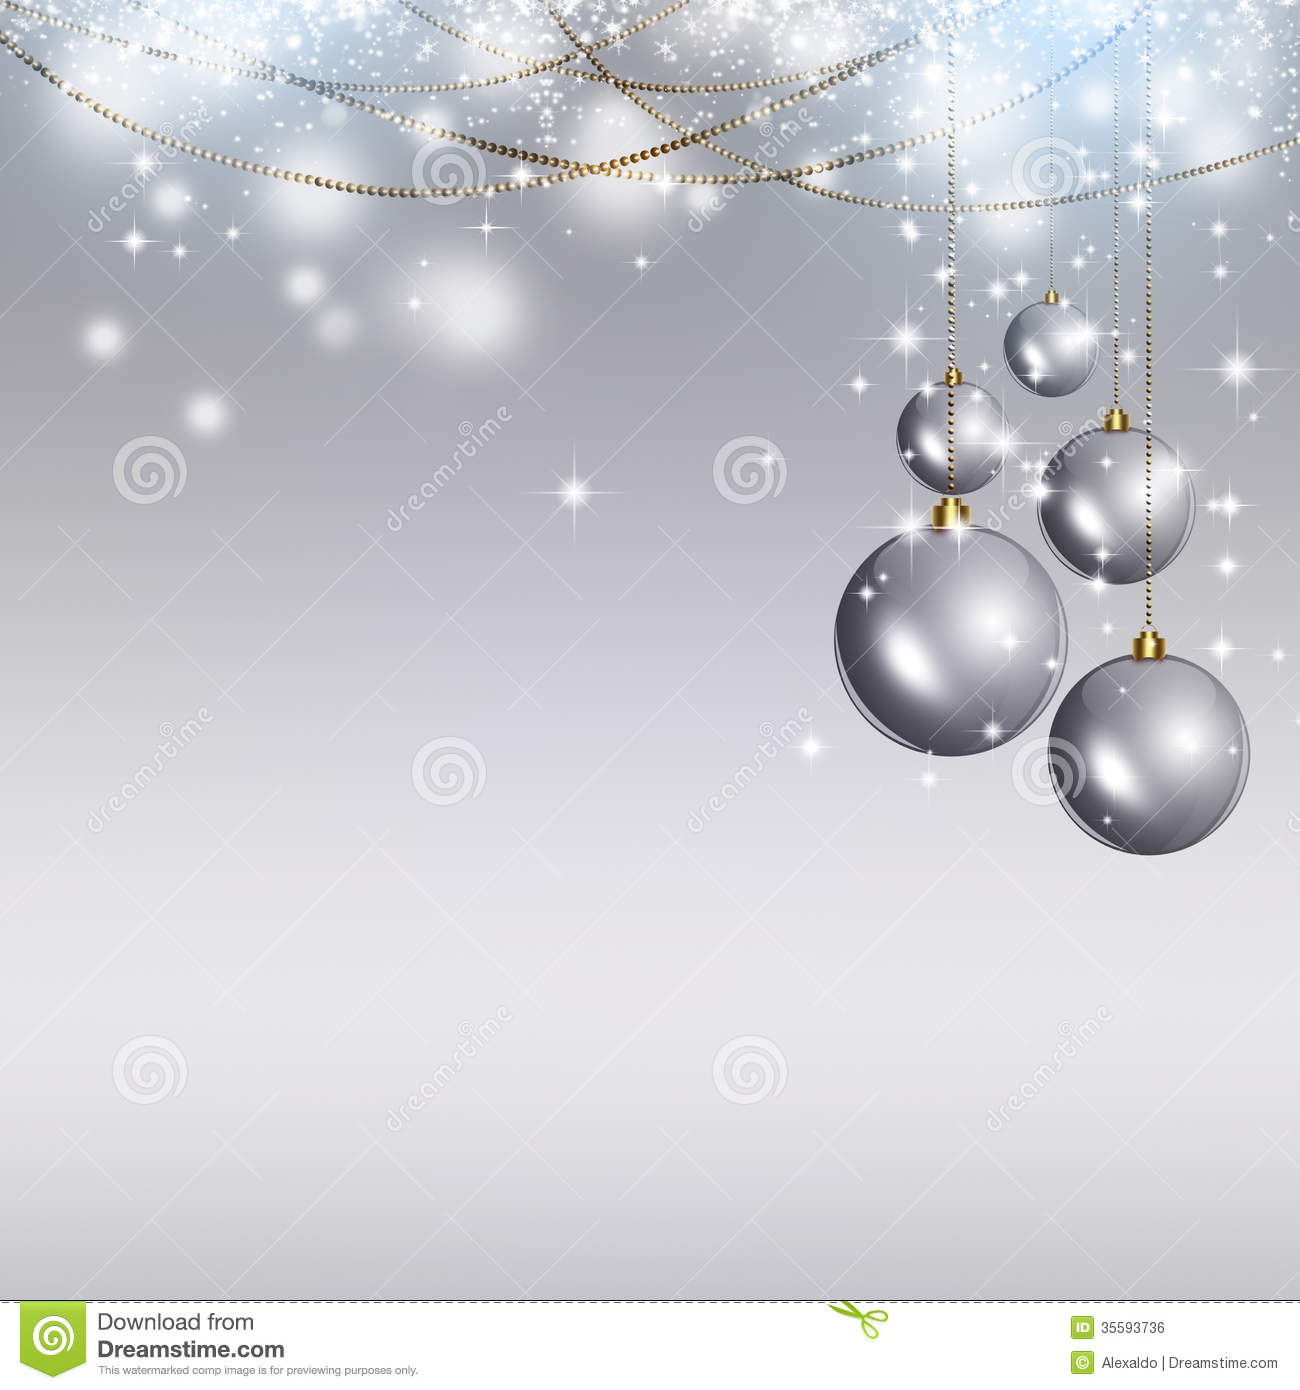 winter holiday party backgrounds - bire.1andwap